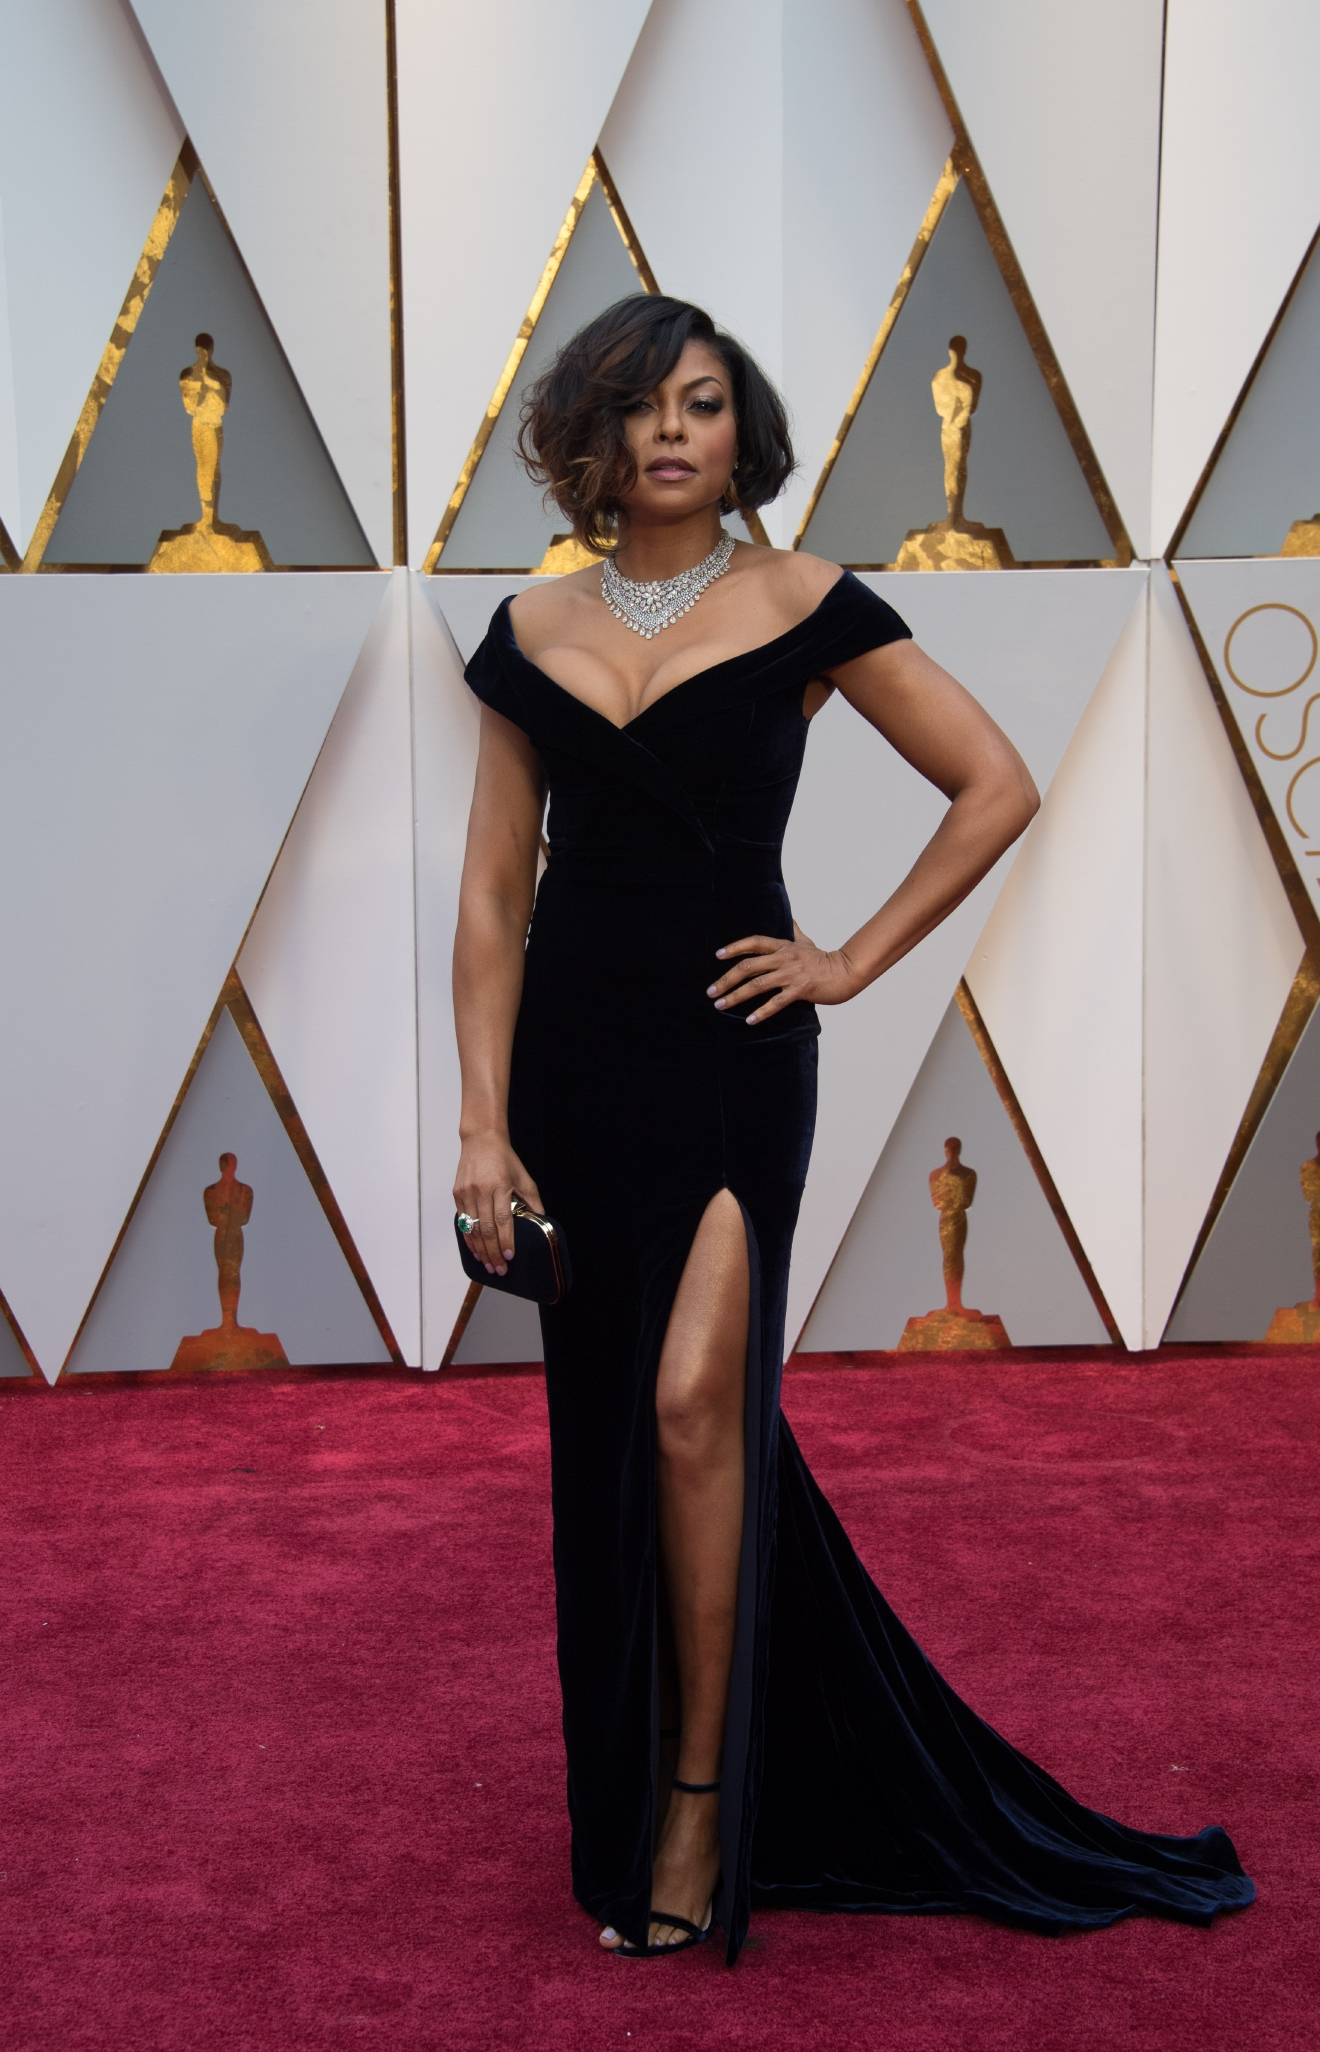 Taraji P. Henson arrives at The 89th Oscars® at the Dolby® Theatre in Hollywood, CA on Sunday, February 26, 2017. (©A.M.P.A.S.)